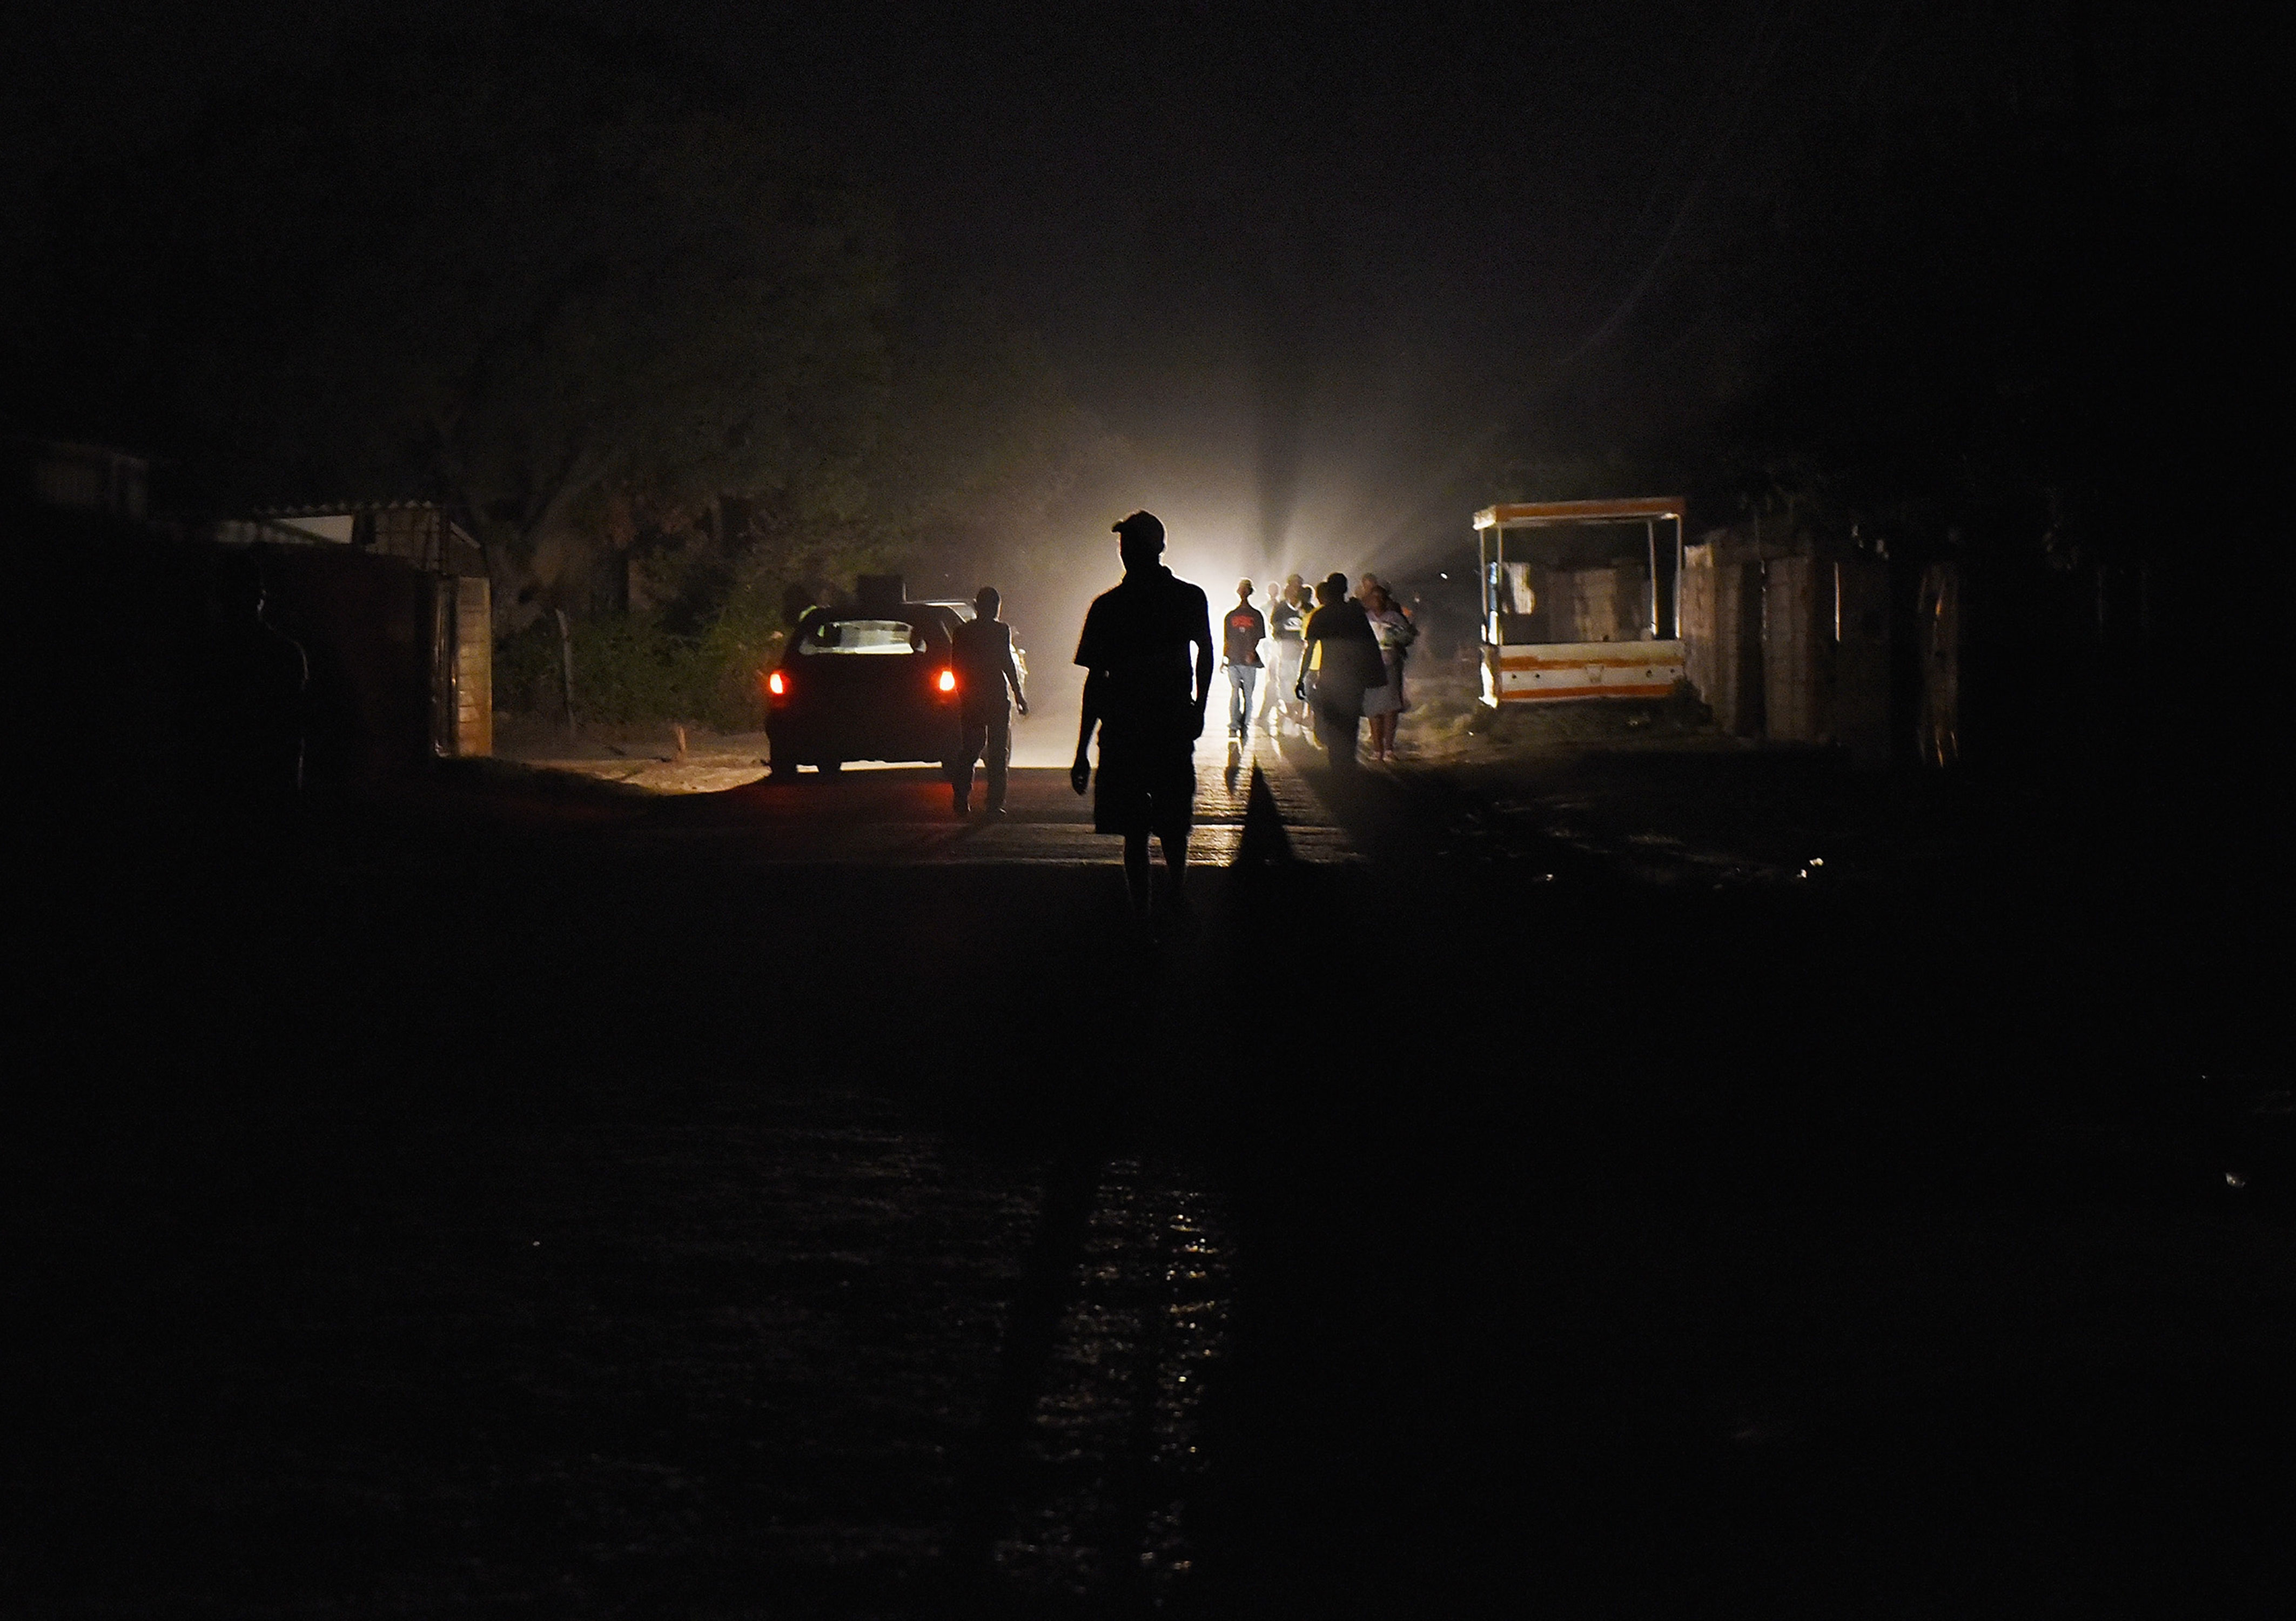 bloomberg.com - Brian Latham - By Killing the Internet, Zimbabwe Kills Commerce and the Lights